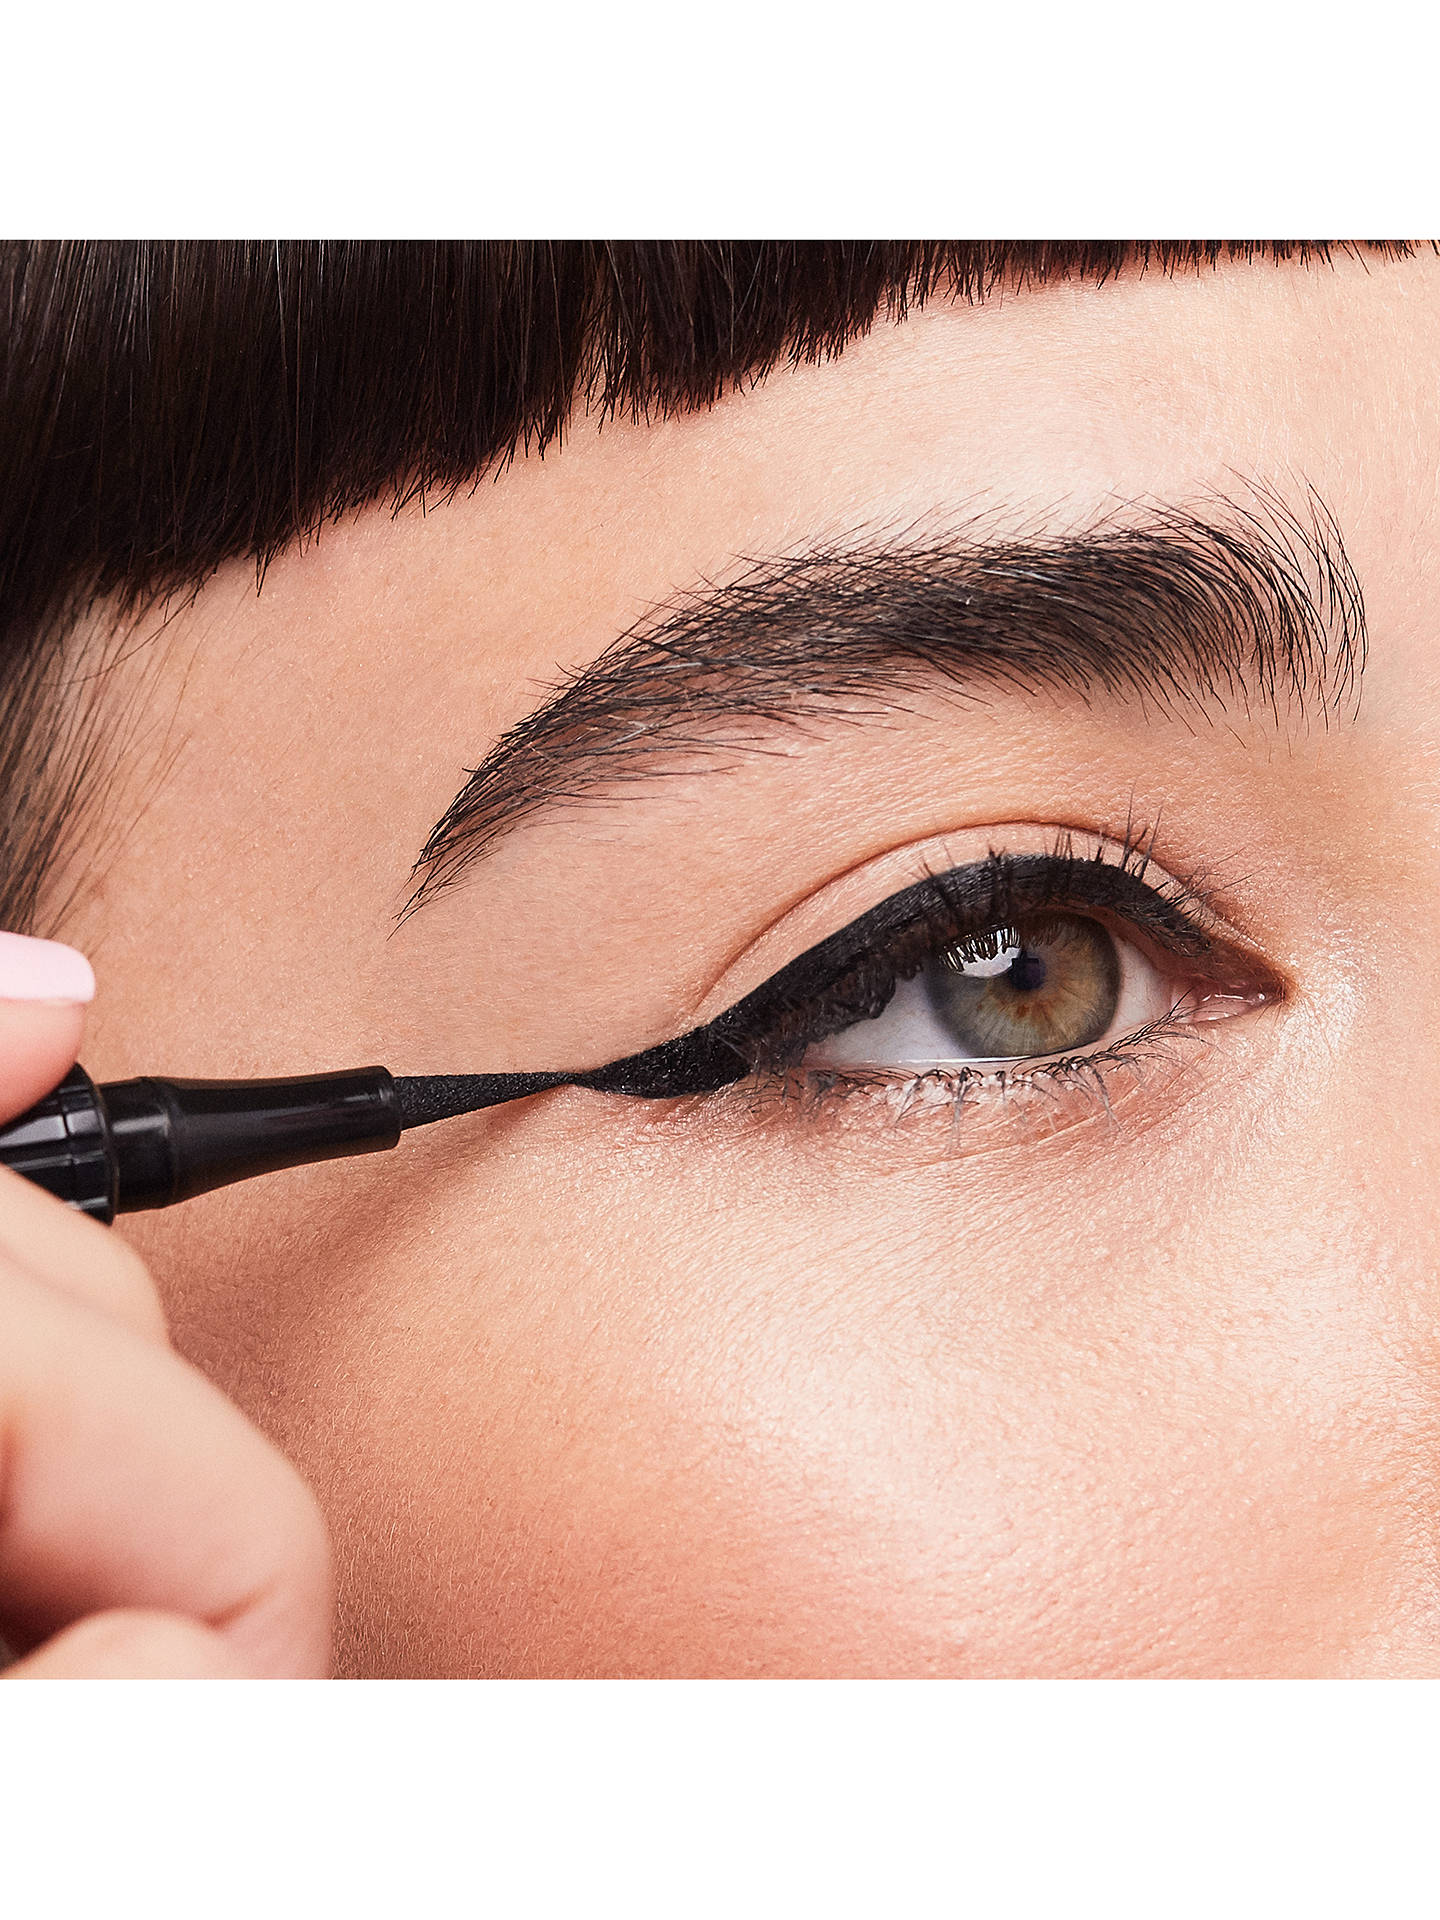 Buy Benefit Roller Liner Eyeliner - True Matte Liquid Eyeliner, Black Online at johnlewis.com